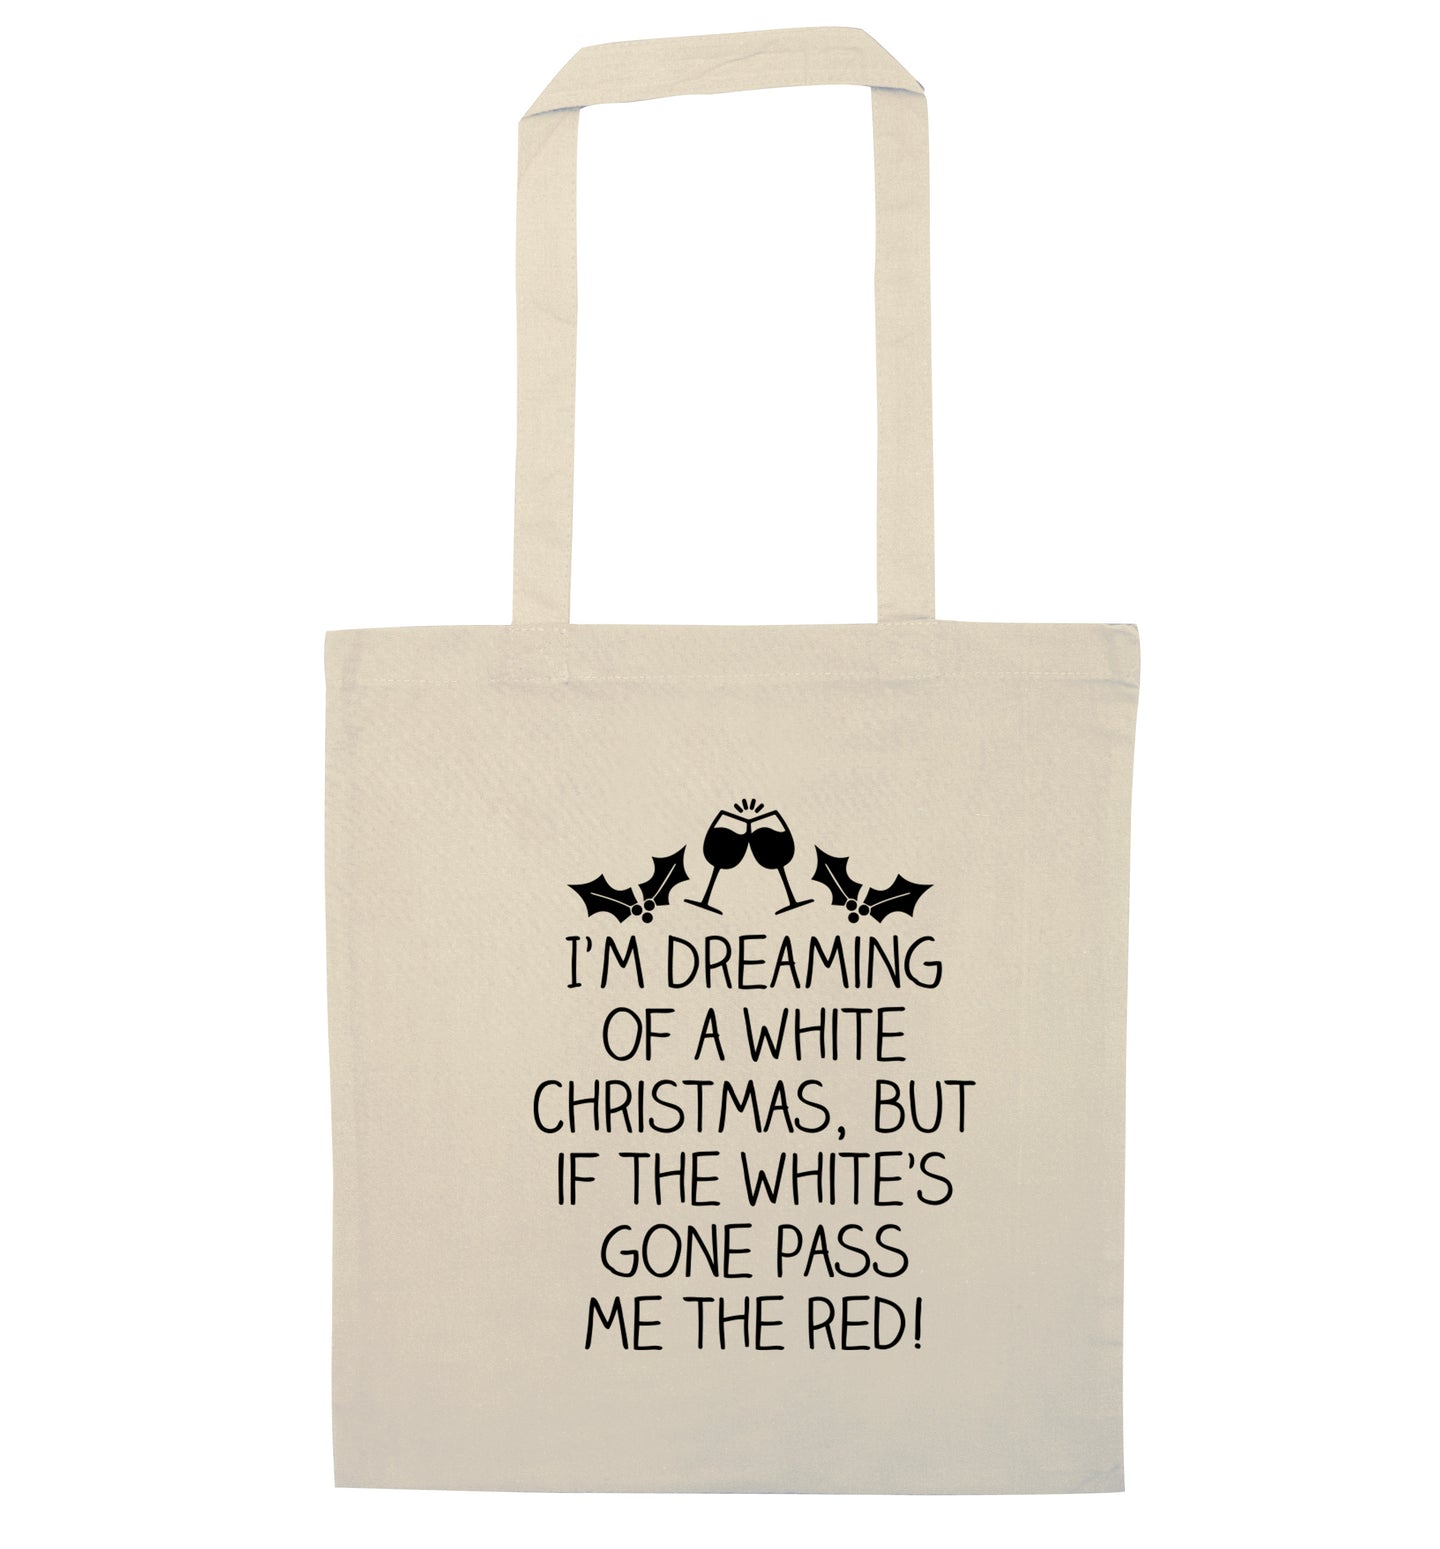 I'm dreaming of a white christmas, but if the white's gone pass me the red! natural tote bag